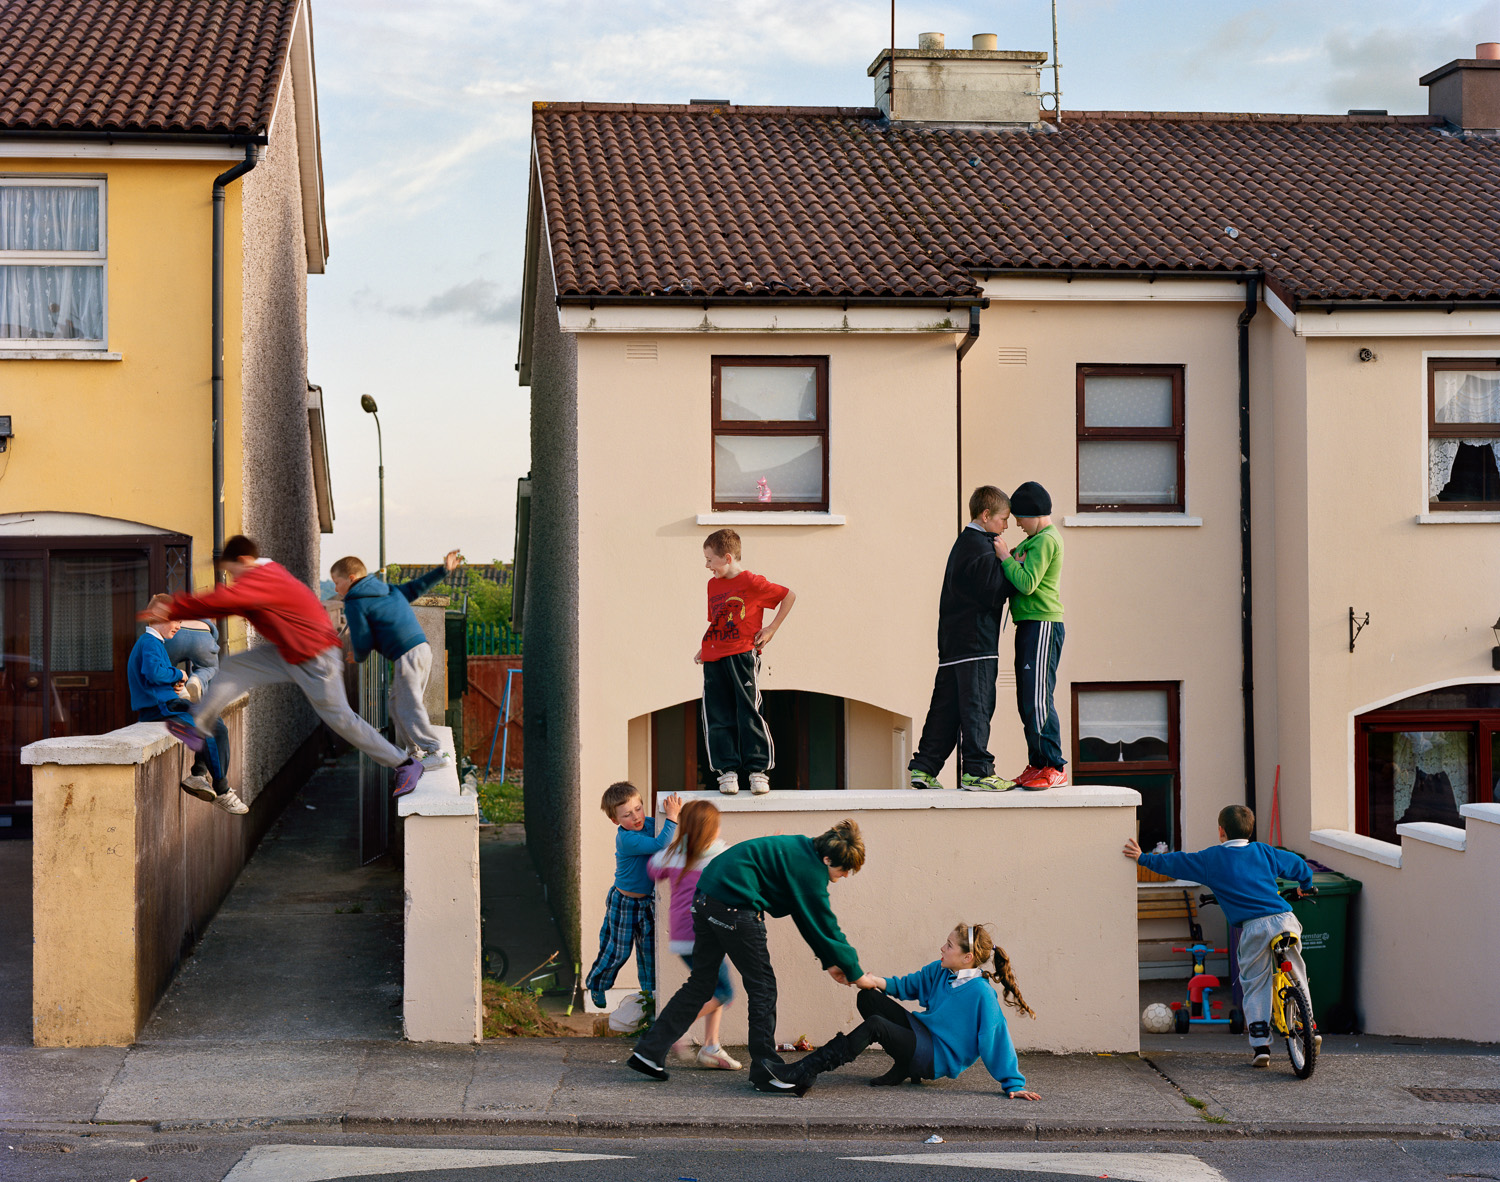 Russell Heights                                                                                              American photographer Doug DuBois has spent the past four summers documenting the lives of teenagers in Cobh County, Ireland, looking  at the bravado and adventure of childhood with an eye towards its fragility and inevitable loss.